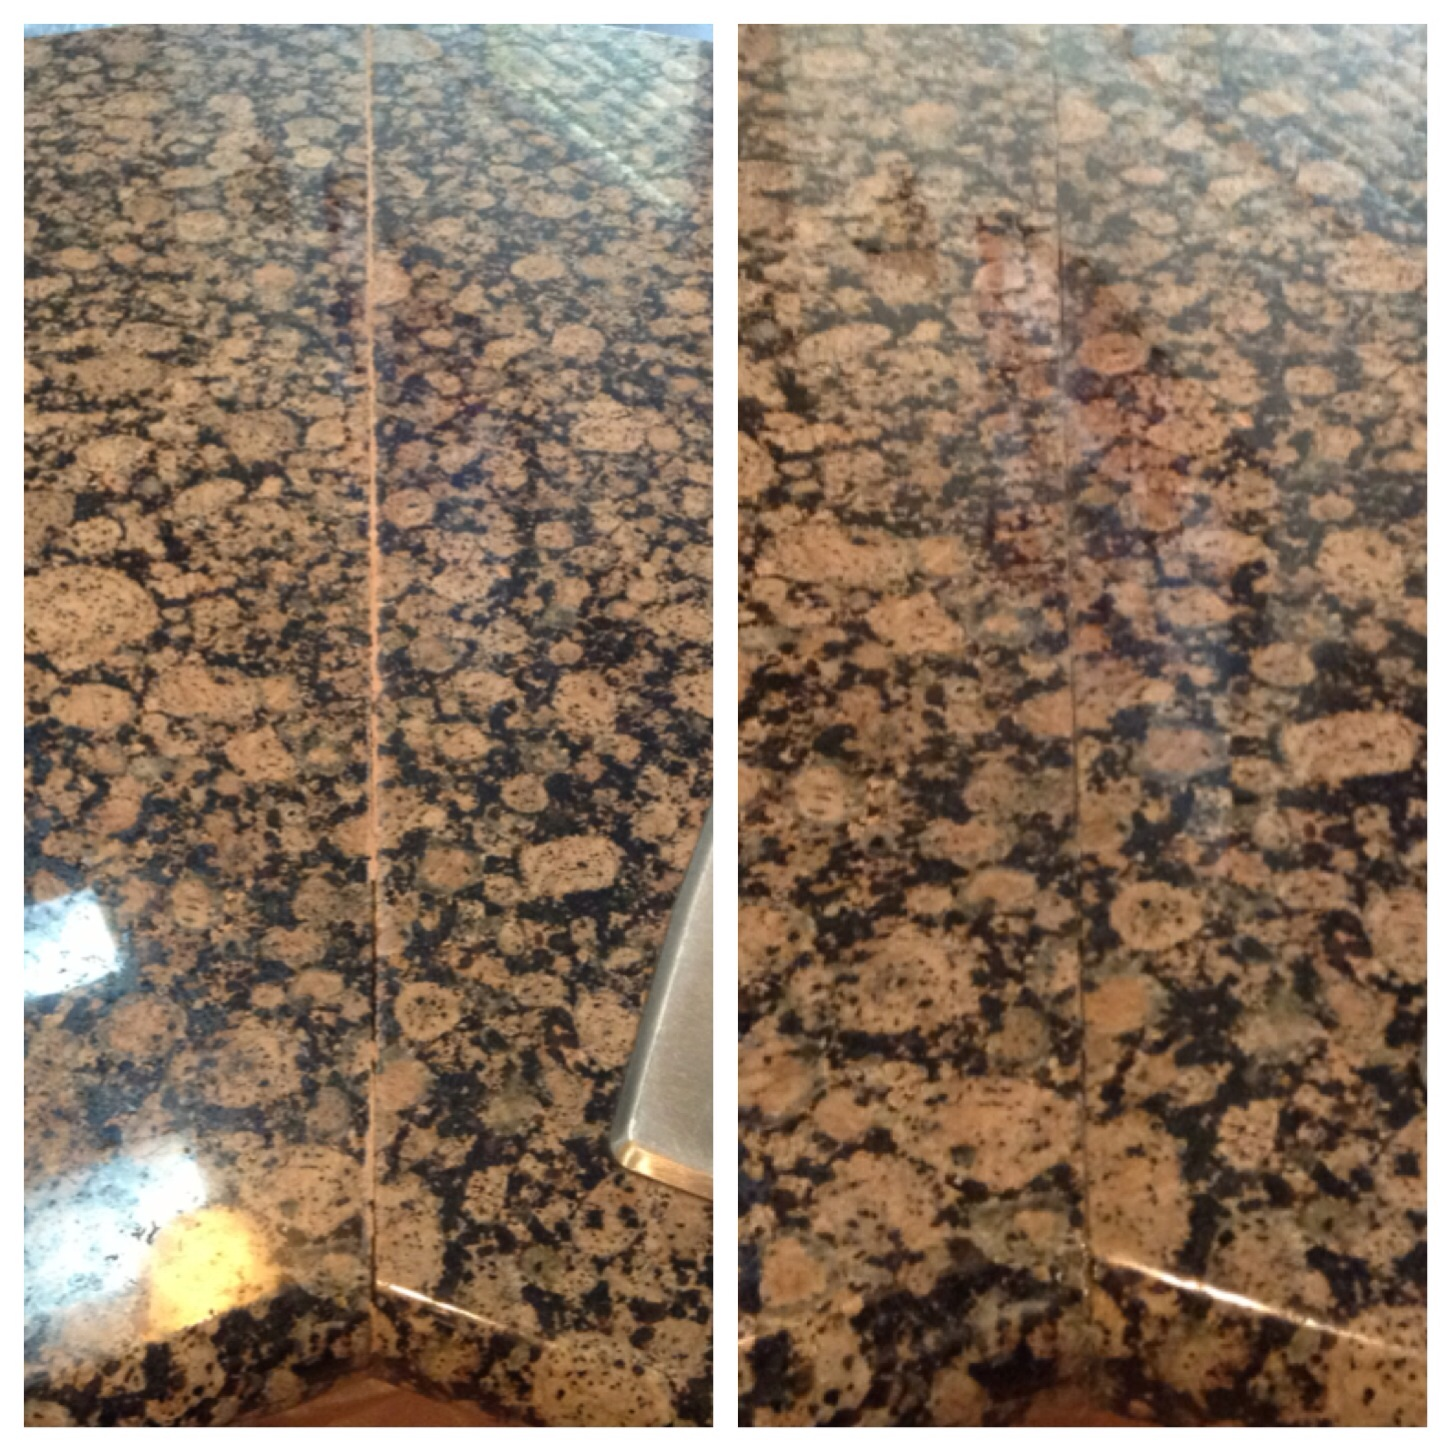 often countertops trends do studio pict u sealing granite with to uncategorized you questions how of any shocking and have car xfile seal lowes popular countertop wax